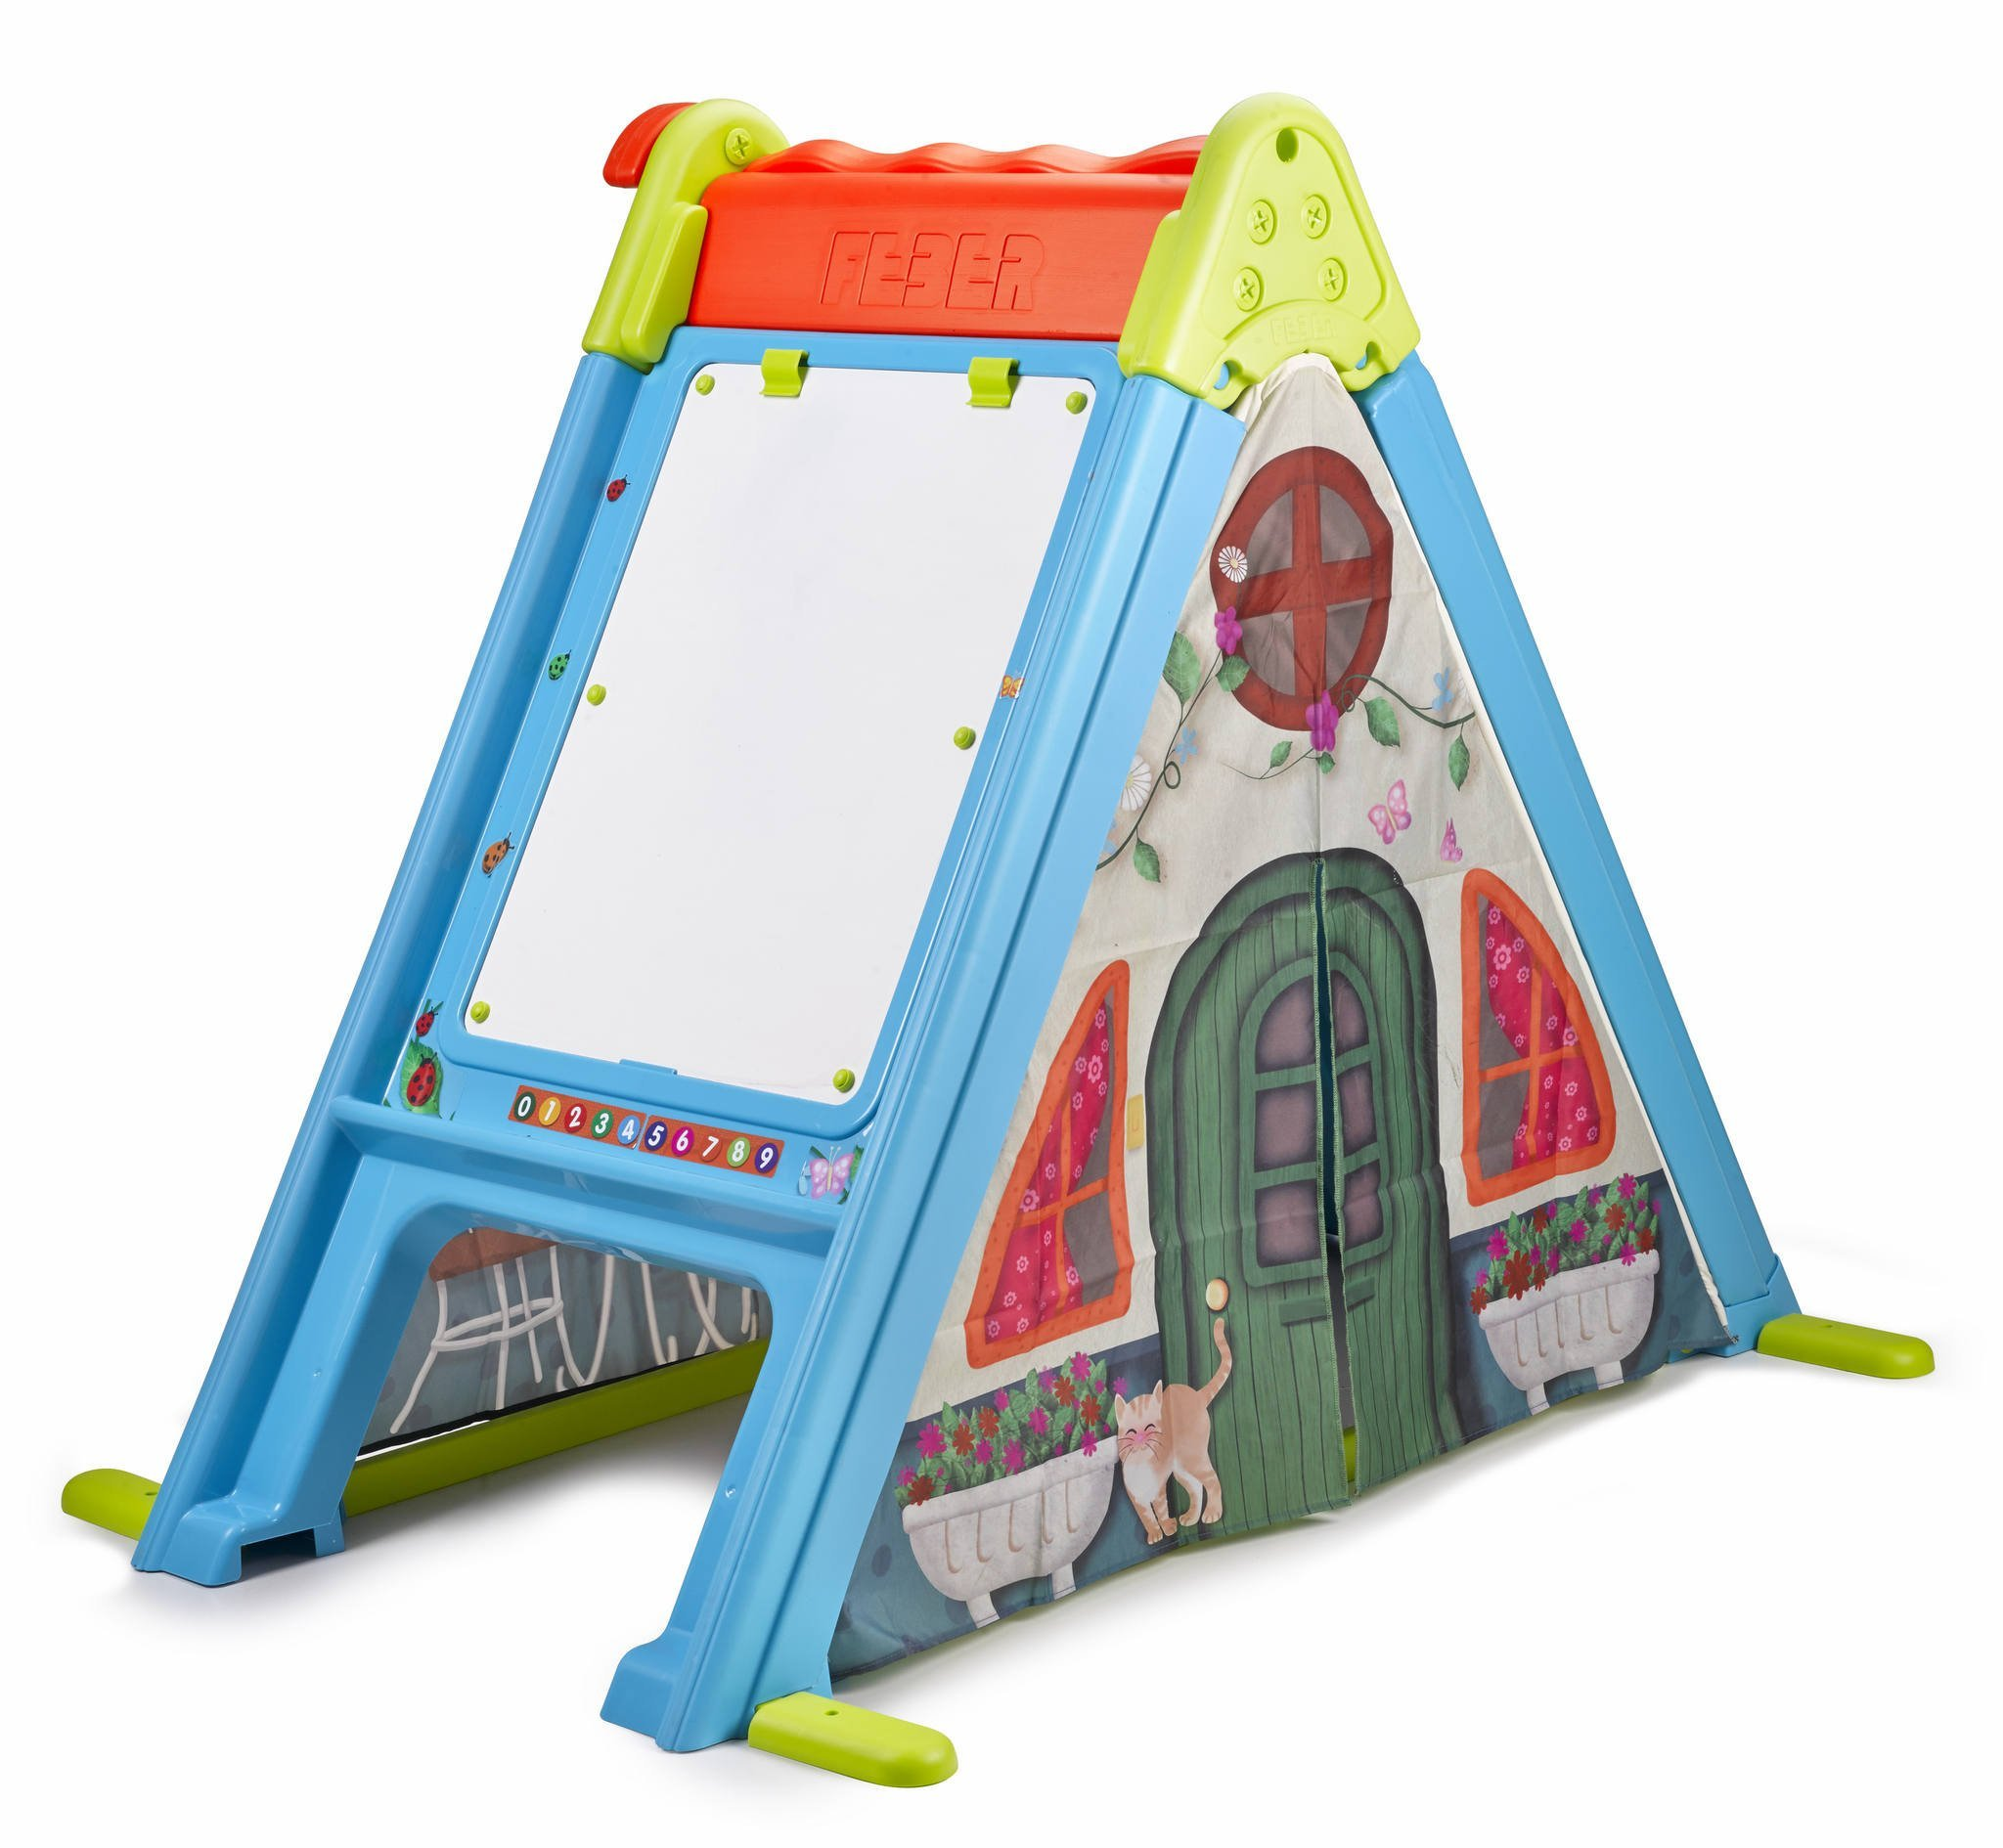 Feber 800011400 Play and Fold Activity House 3 in 1 – Playset - Easy to Store – Indoor and Outdoor, Multicolor